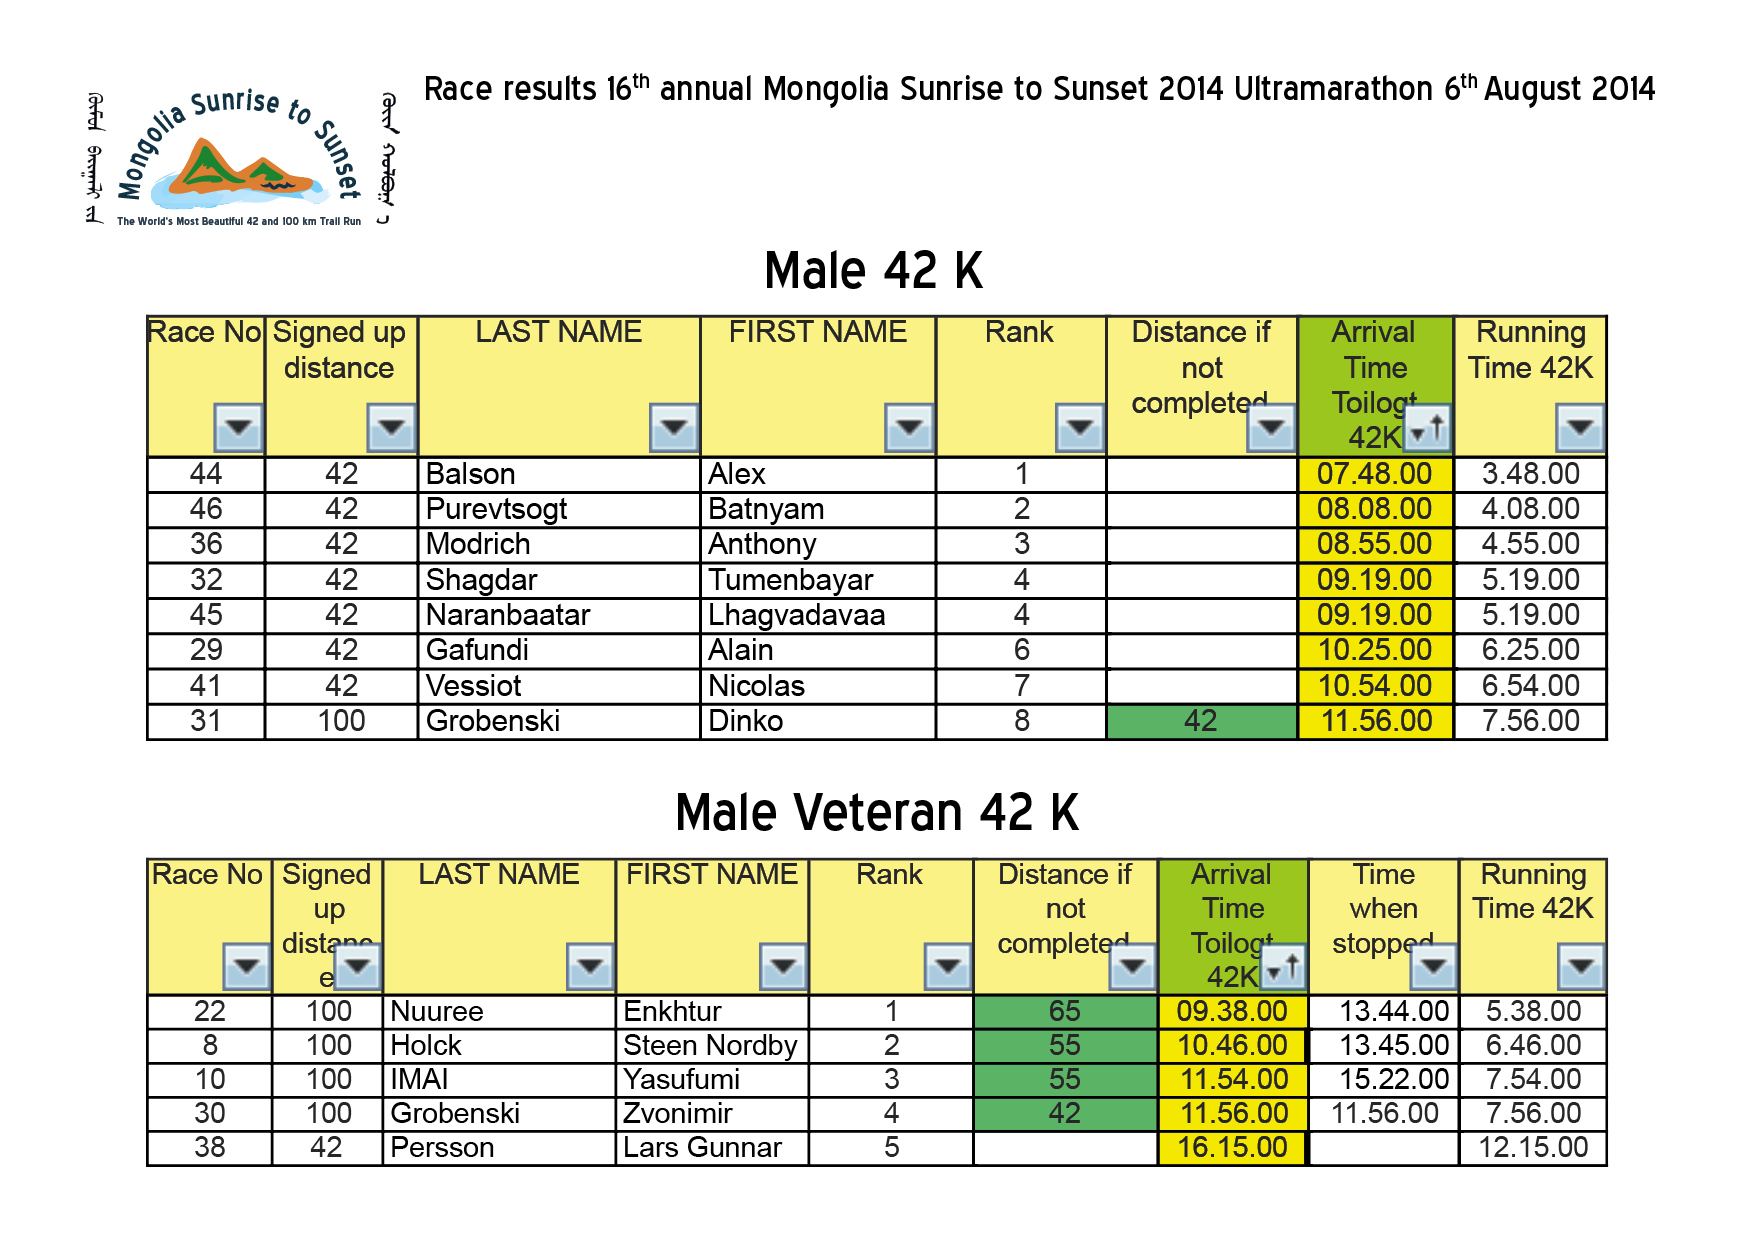 Race results 16th annual Mongolia Sunrise to Sunset 2014 Ultramarathon2